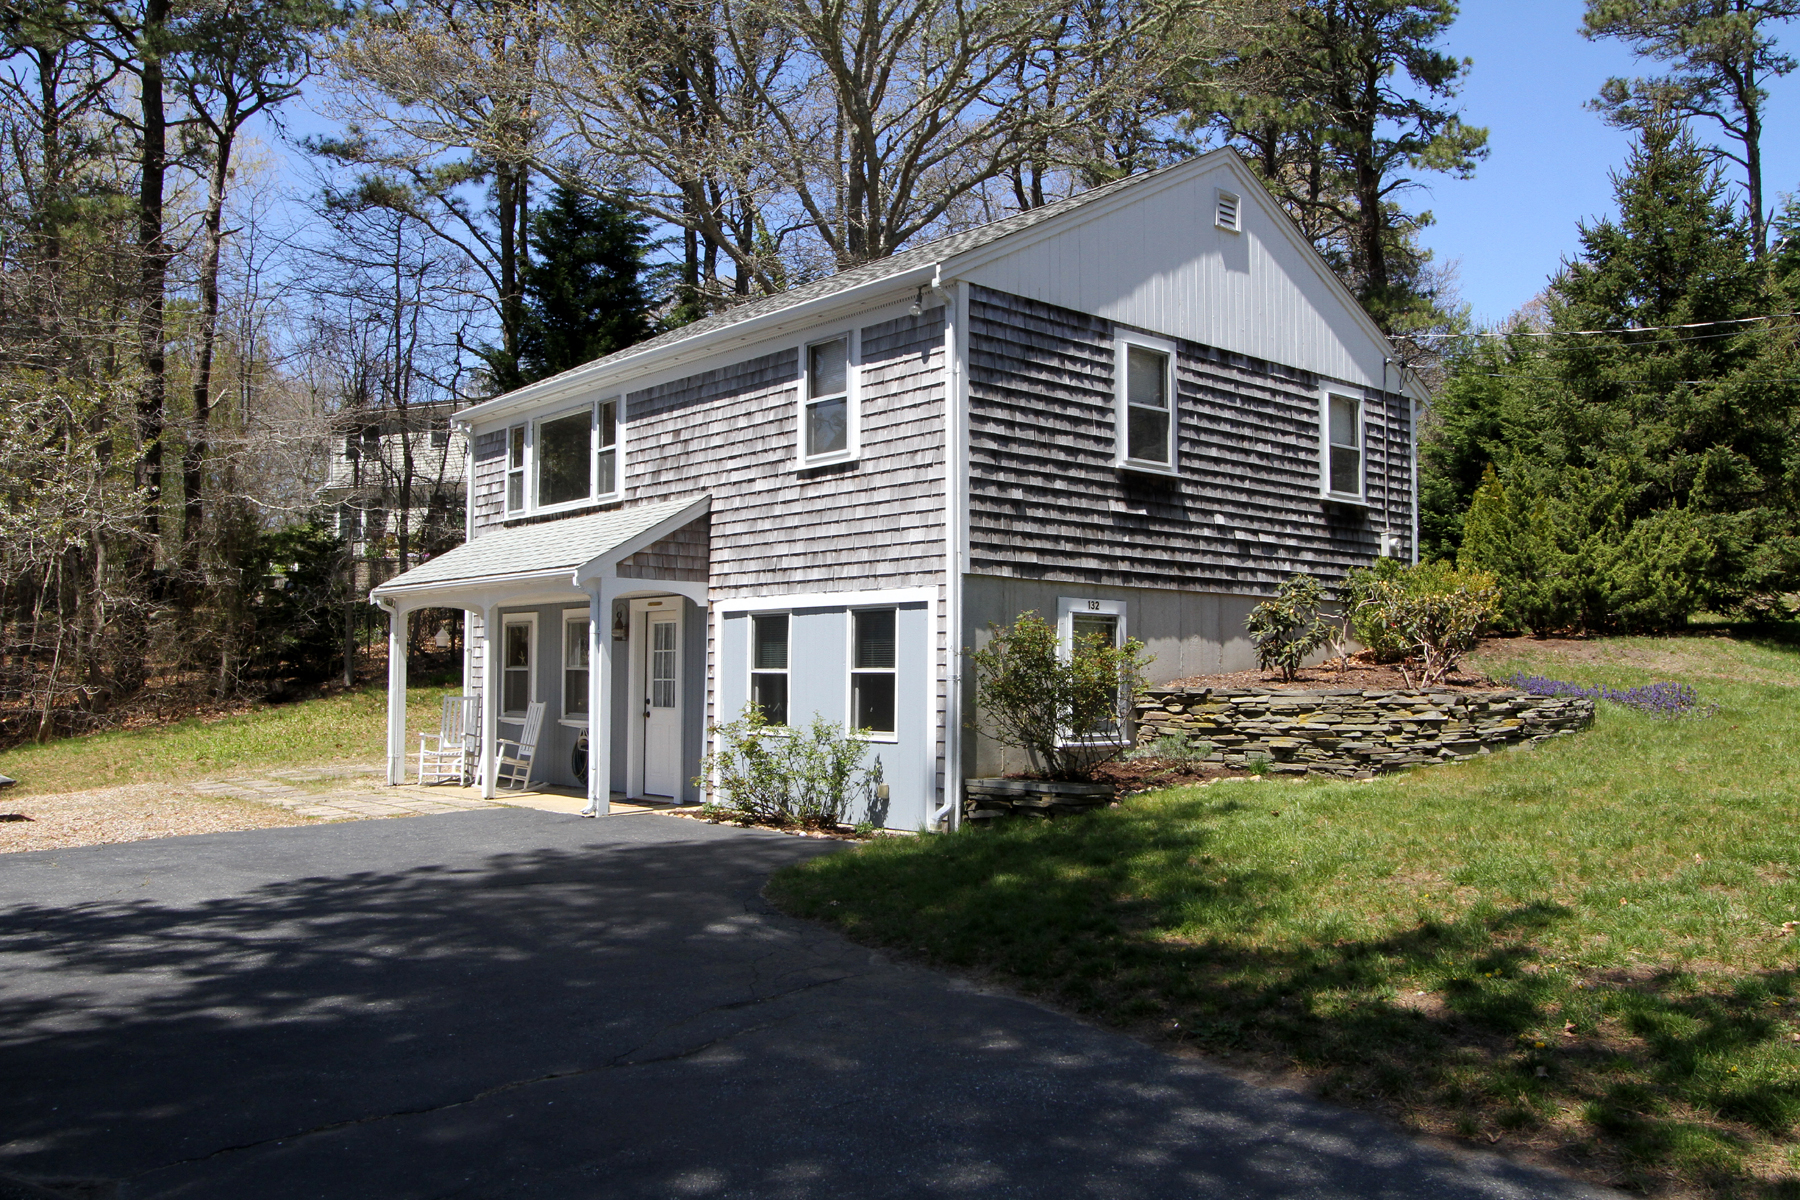 Single Family Home for Sale at 132 Alden Drive, Brewster, MA Brewster, Massachusetts, 02631 United States